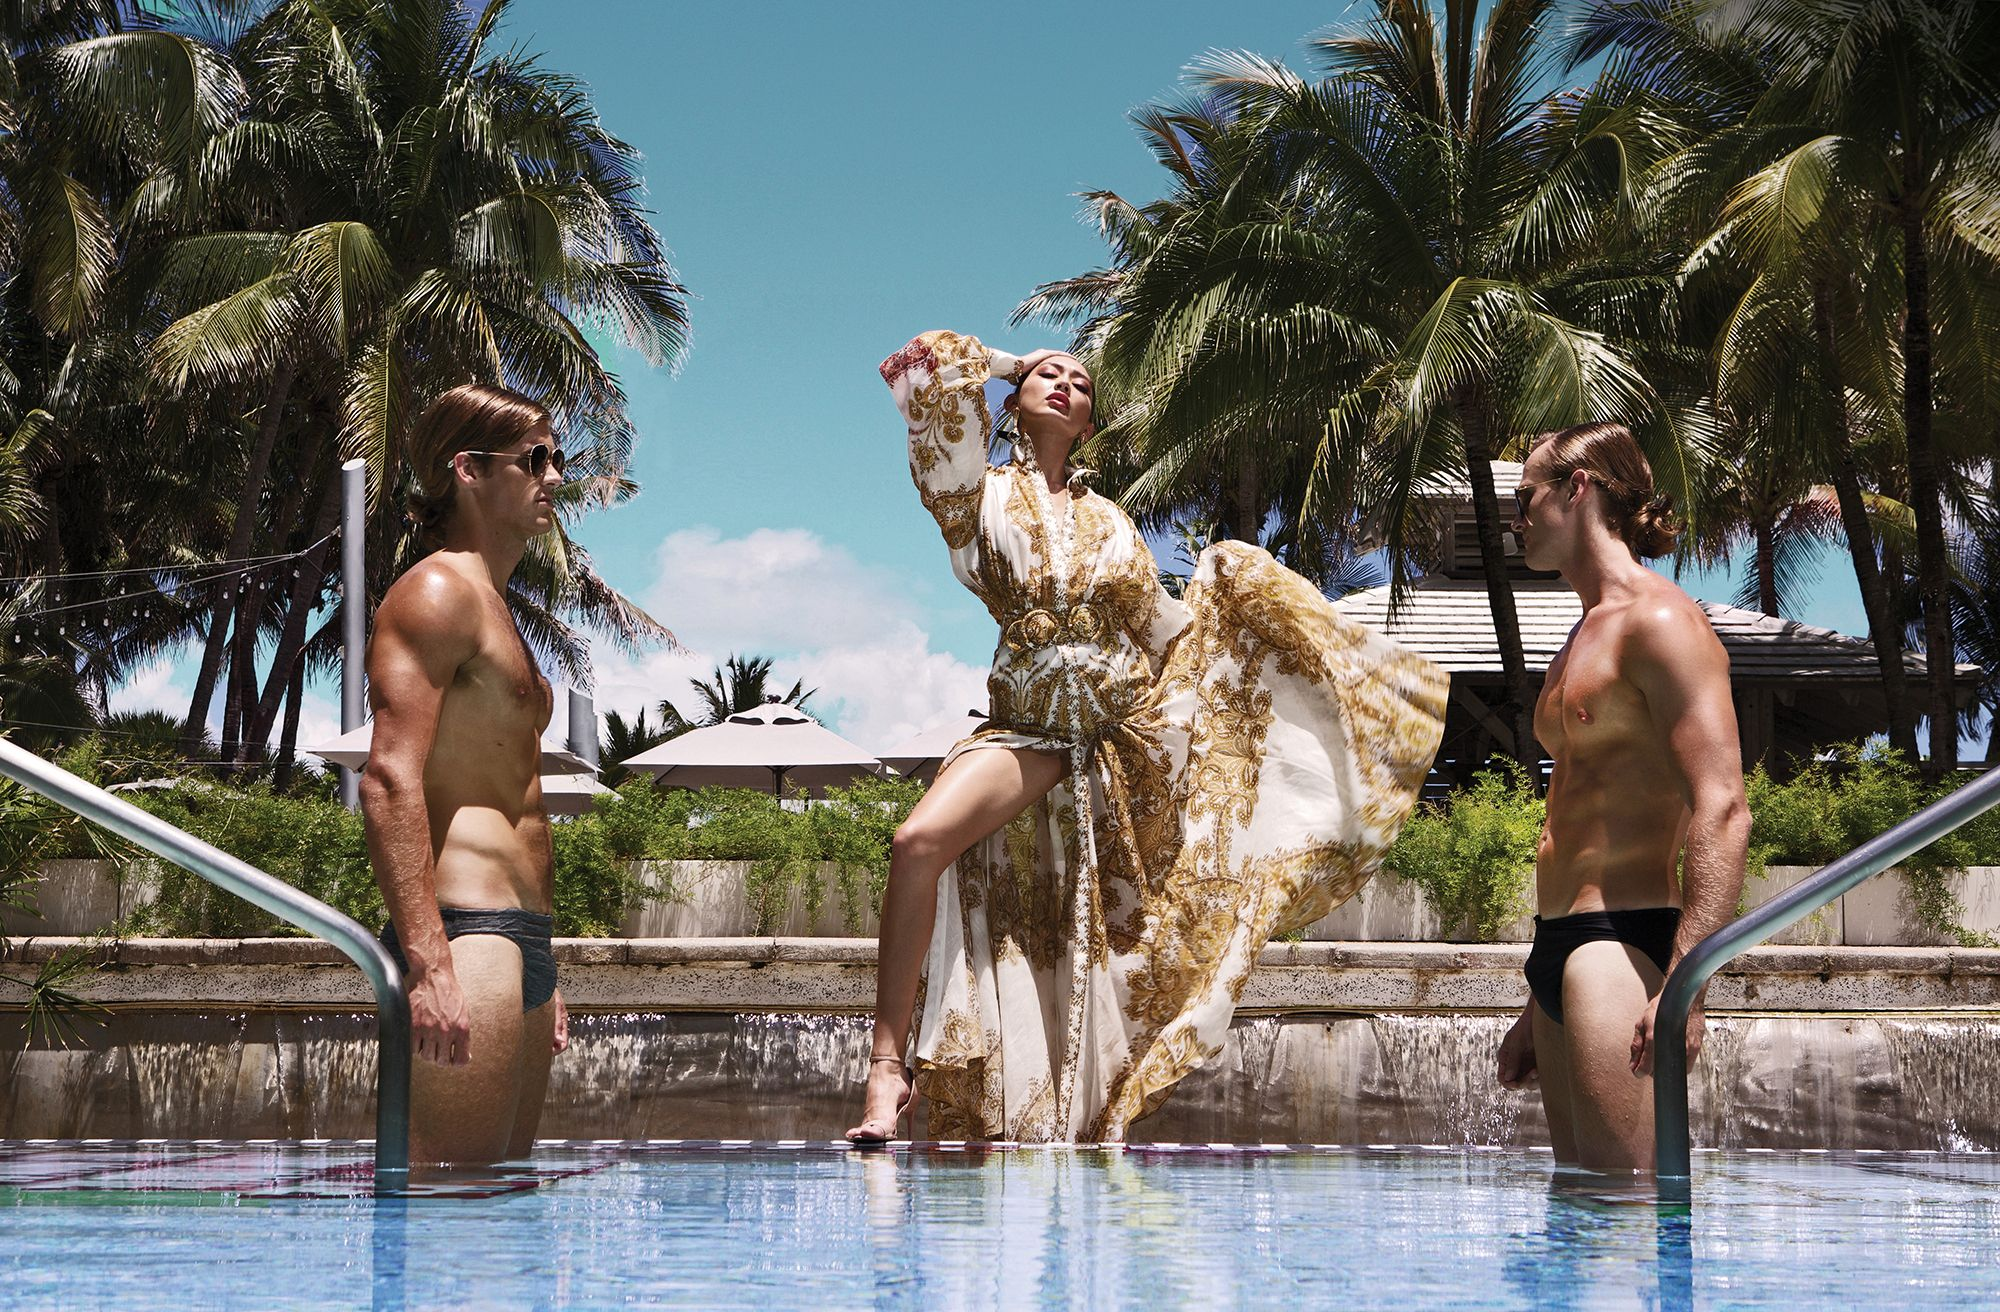 (On Alyssa) Gold and white caftan dress by Zimmerman, gold sandals by Guiseppe Zanotti, and accessories by Cristina Sabatini; (on male models) Trunks by Speedo and sunglasses by Carrera